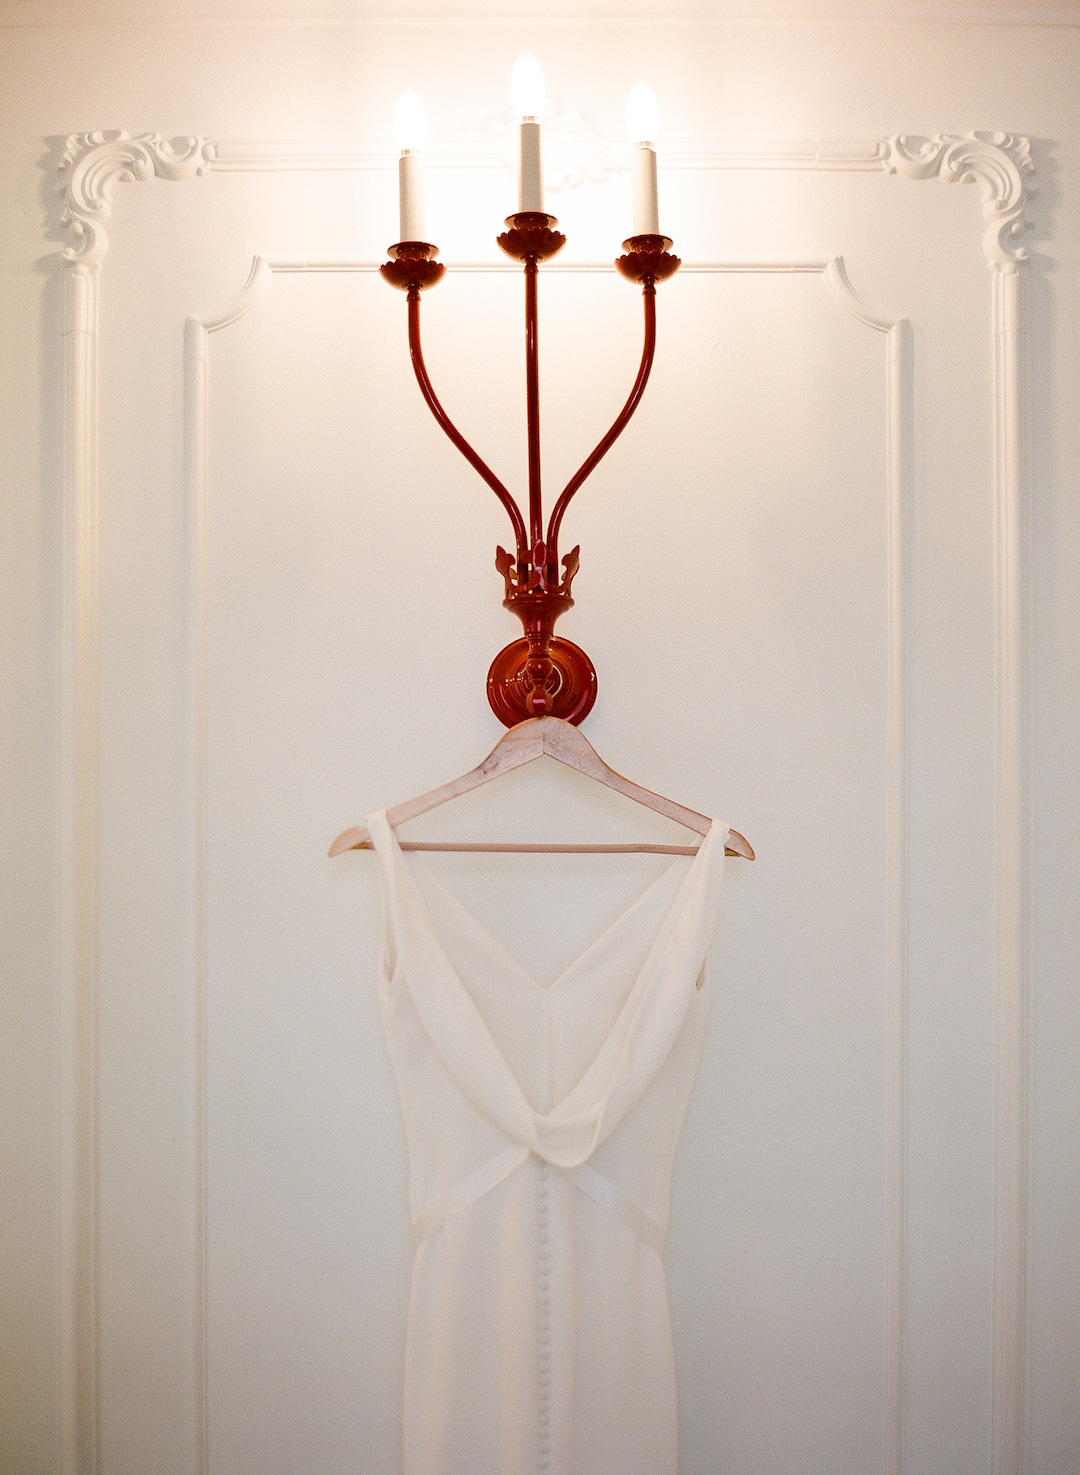 Simple wedding dress for Pittsburgh wedding at Hotel Monaco planned by Exhale Events. Find more modern wedding ideas at exhale-events.com!